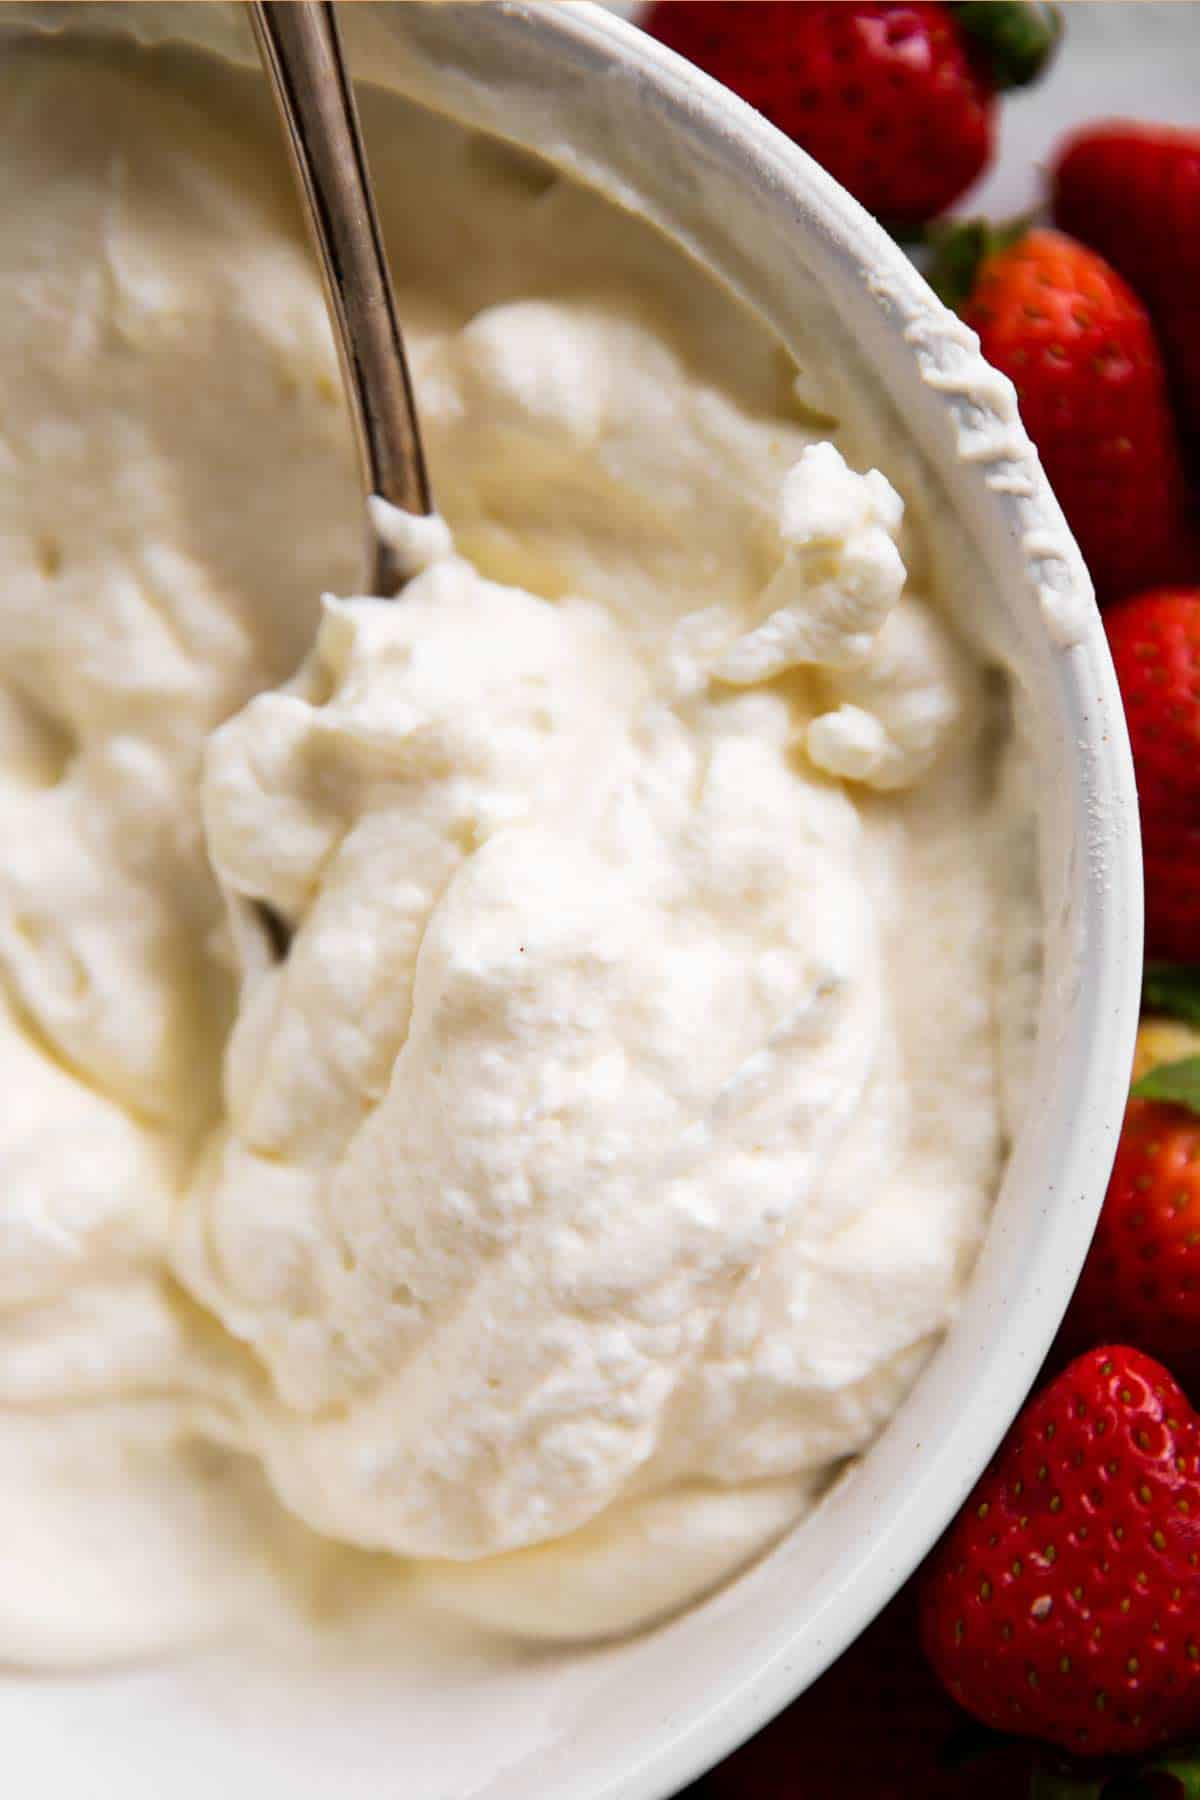 overhead view of whipped cream in white bowl with spoon next to fresh strawberries